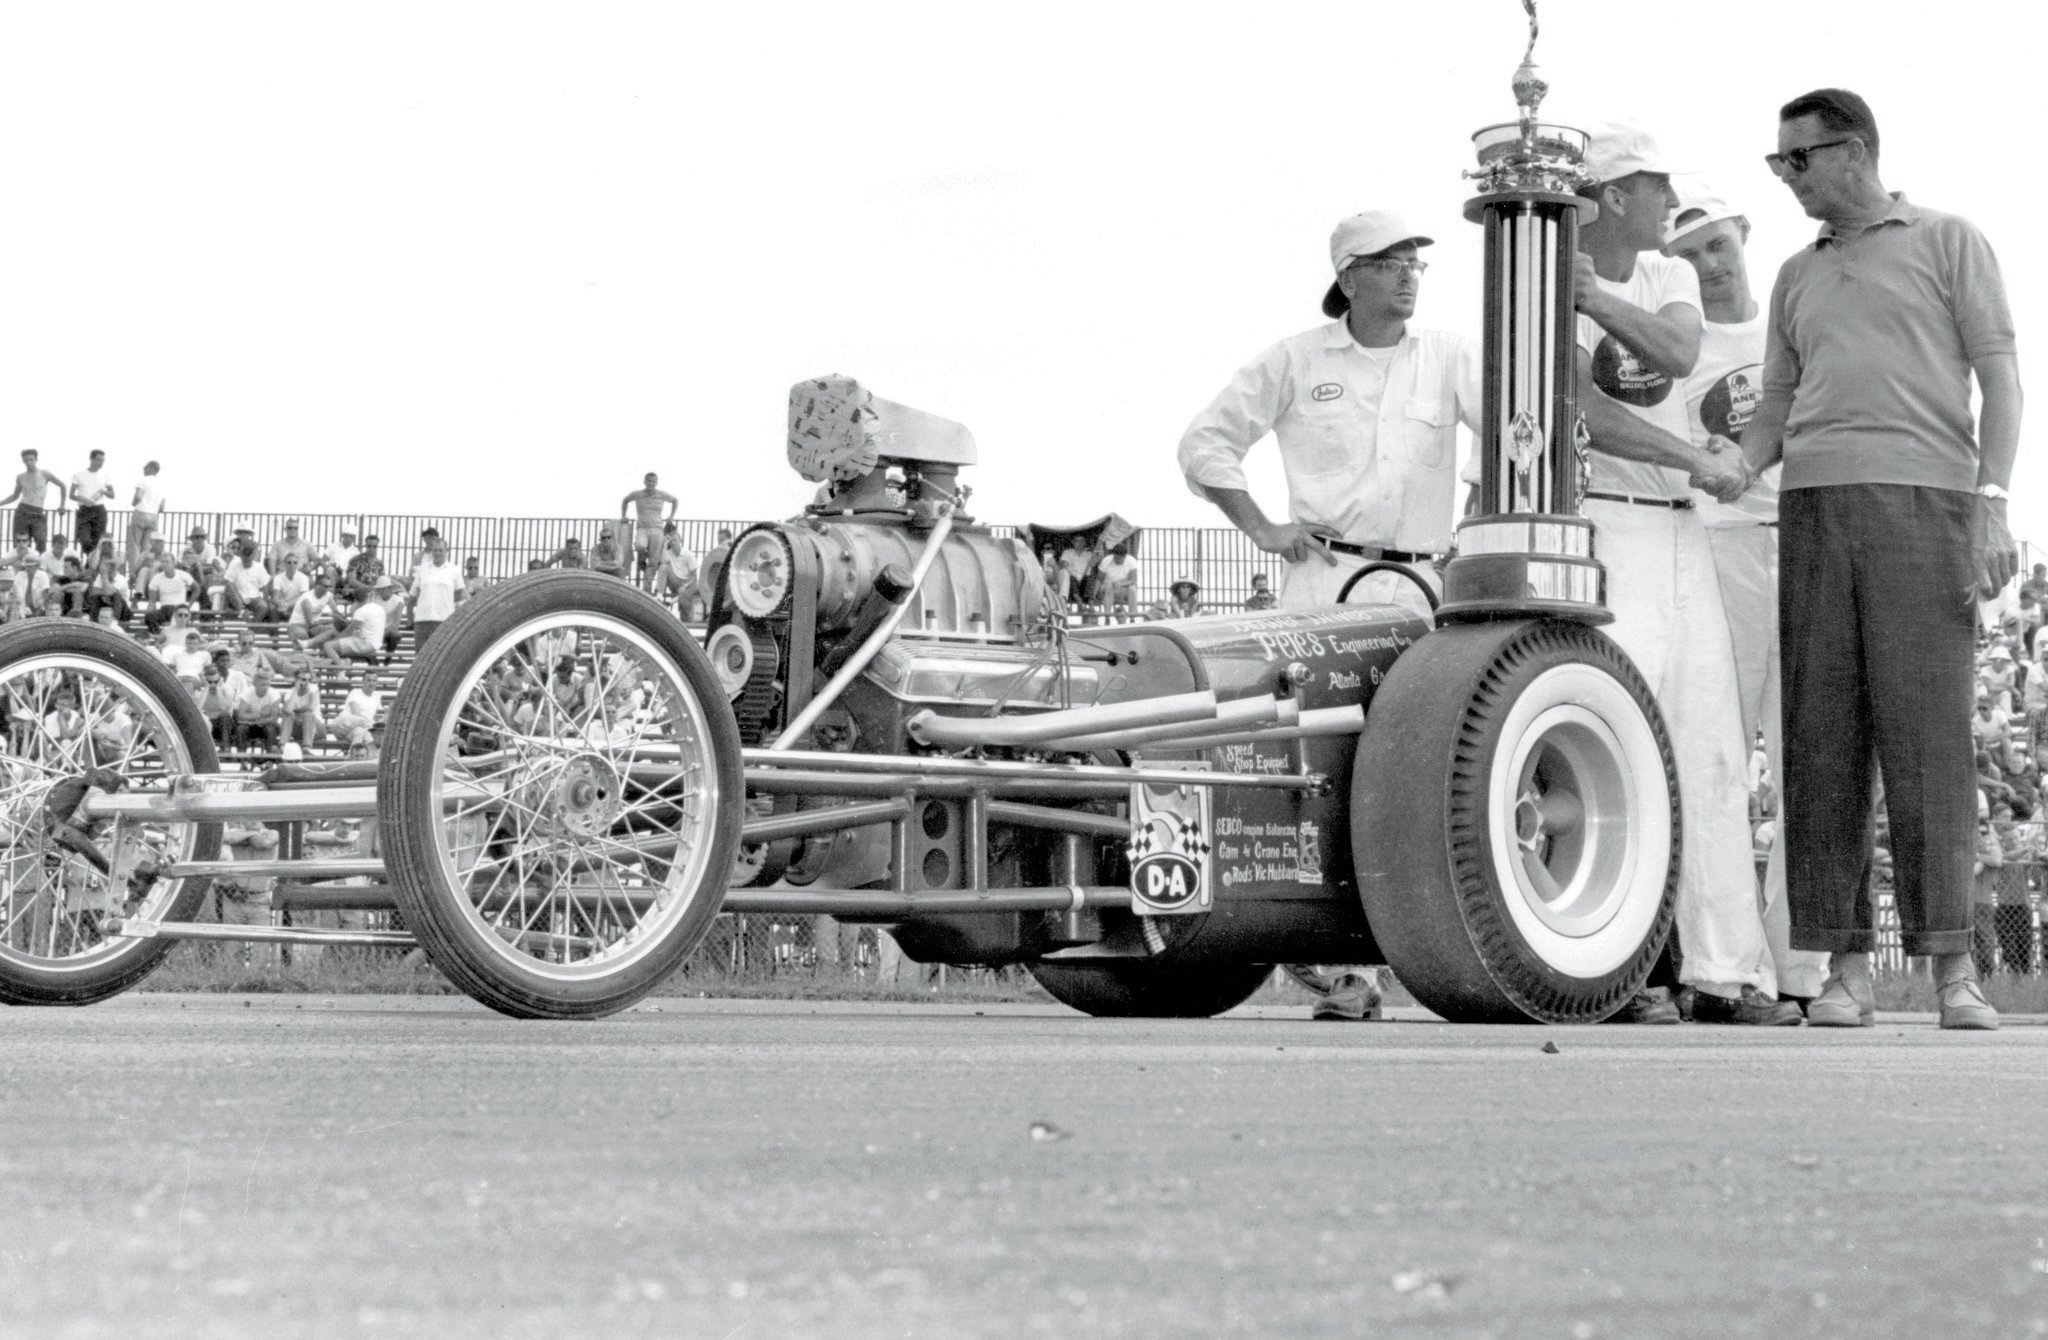 Unknown outside the South, Robinson took the 1961 NHRA Nationals Top Eliminator in the best dark horse tradition. Trophy presentation included Pete's Atlanta pal Julius Hughes (left), Pete, co-owner Bill Word, and NHRA President Wally Parks. Pete beat them all with a simple, lightweight design, sharp tuning, and heads-up driving.